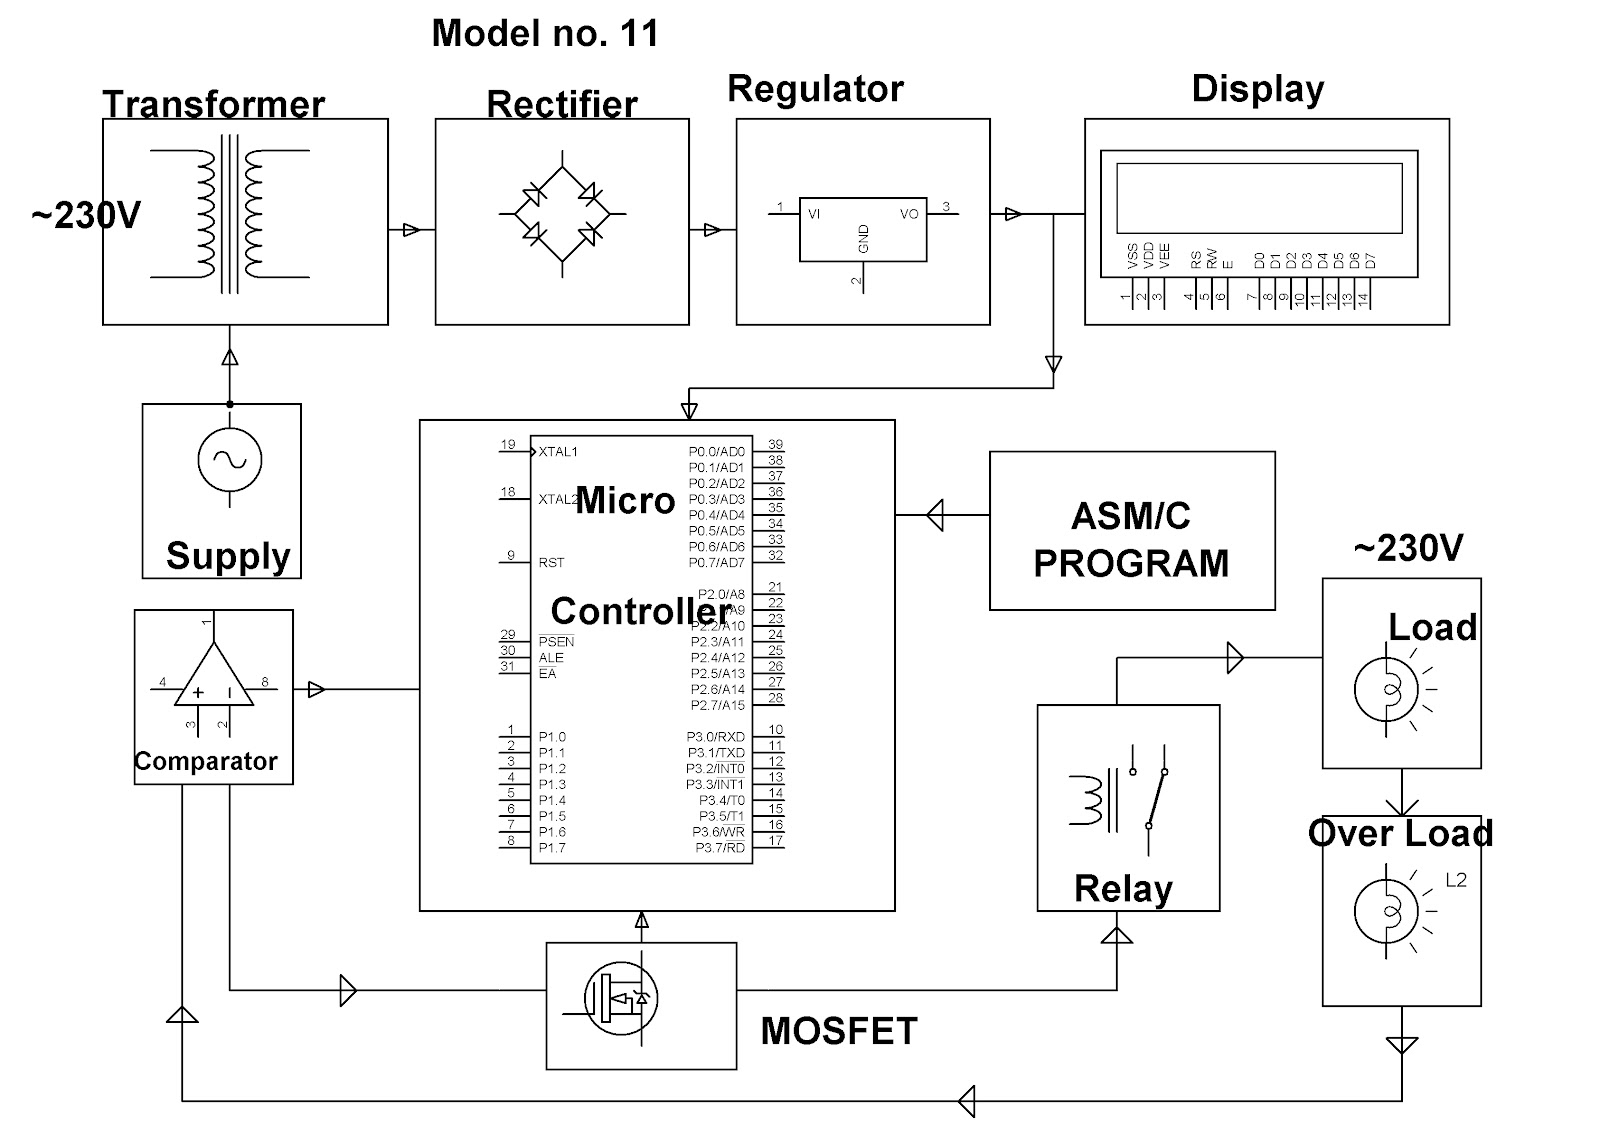 Engineering Projects May 2012 Pin By Edgefx Kits On Electronic Circuits Pinterest For More Details About This Project Please Visit Http Efxkitscom Kit Microcontroller 1005html